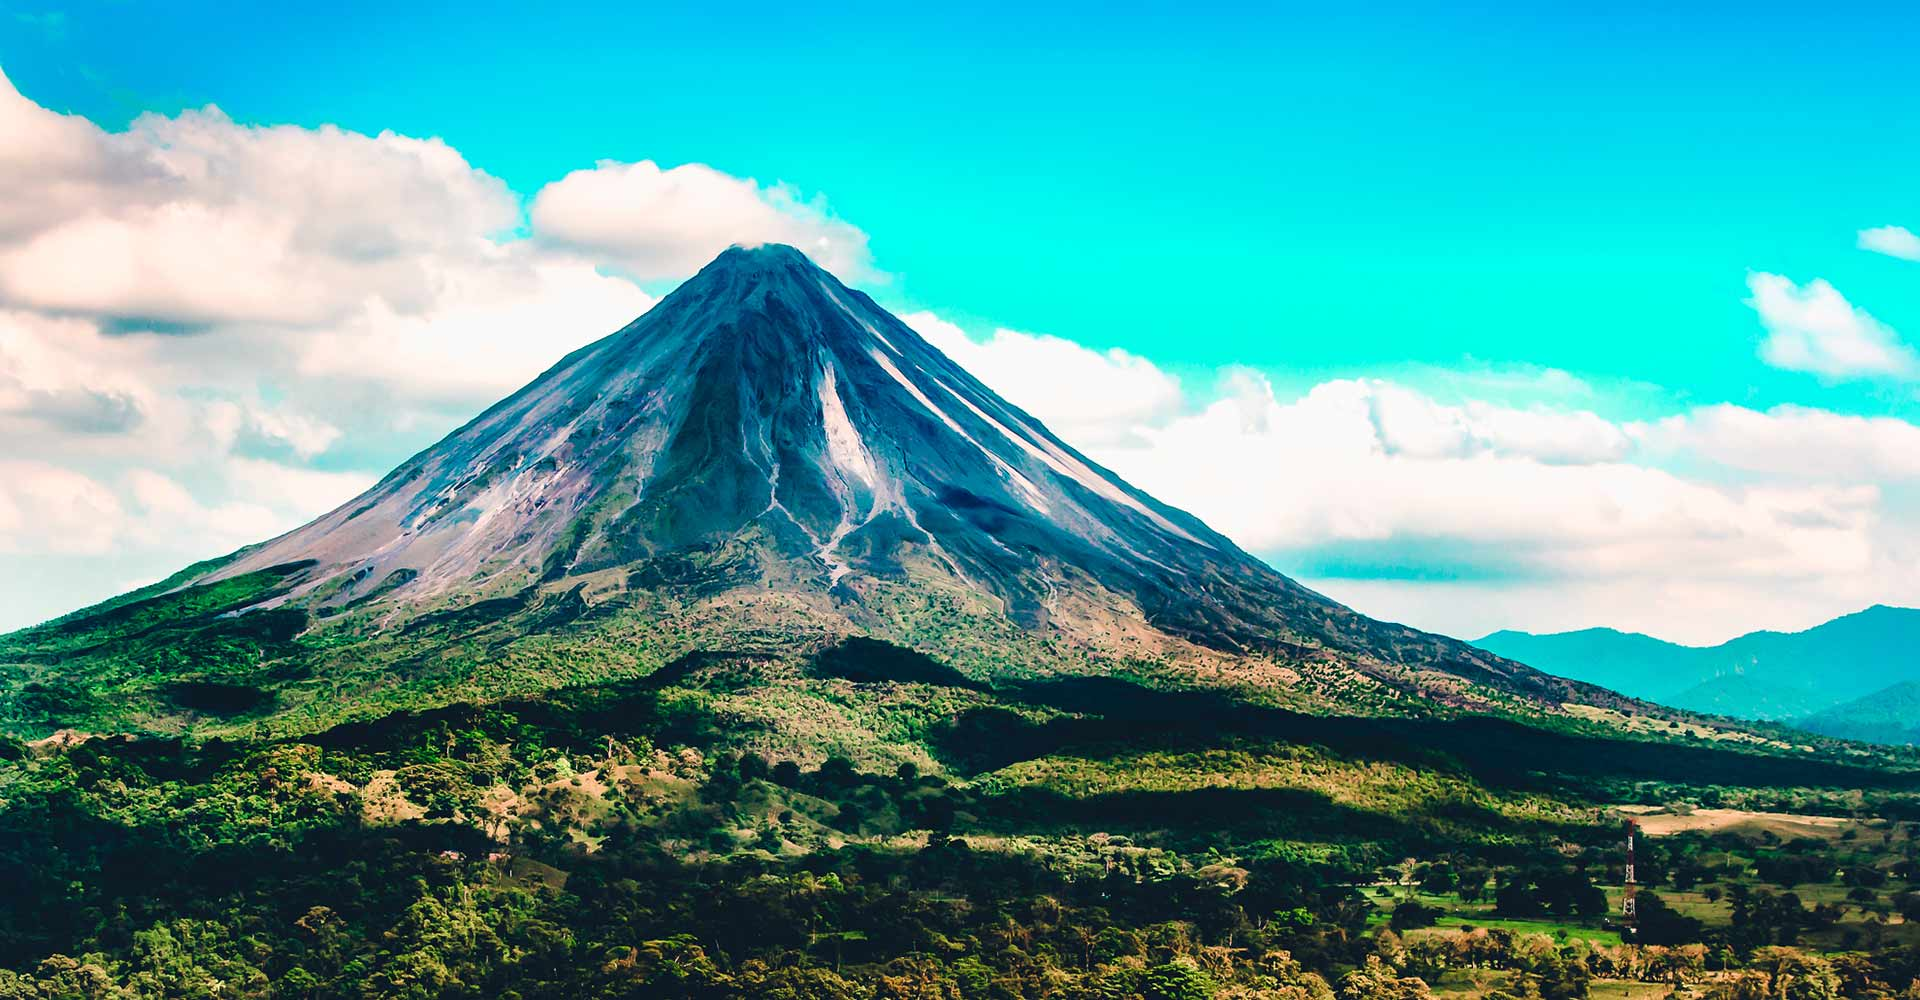 Banner image of Costa Rica